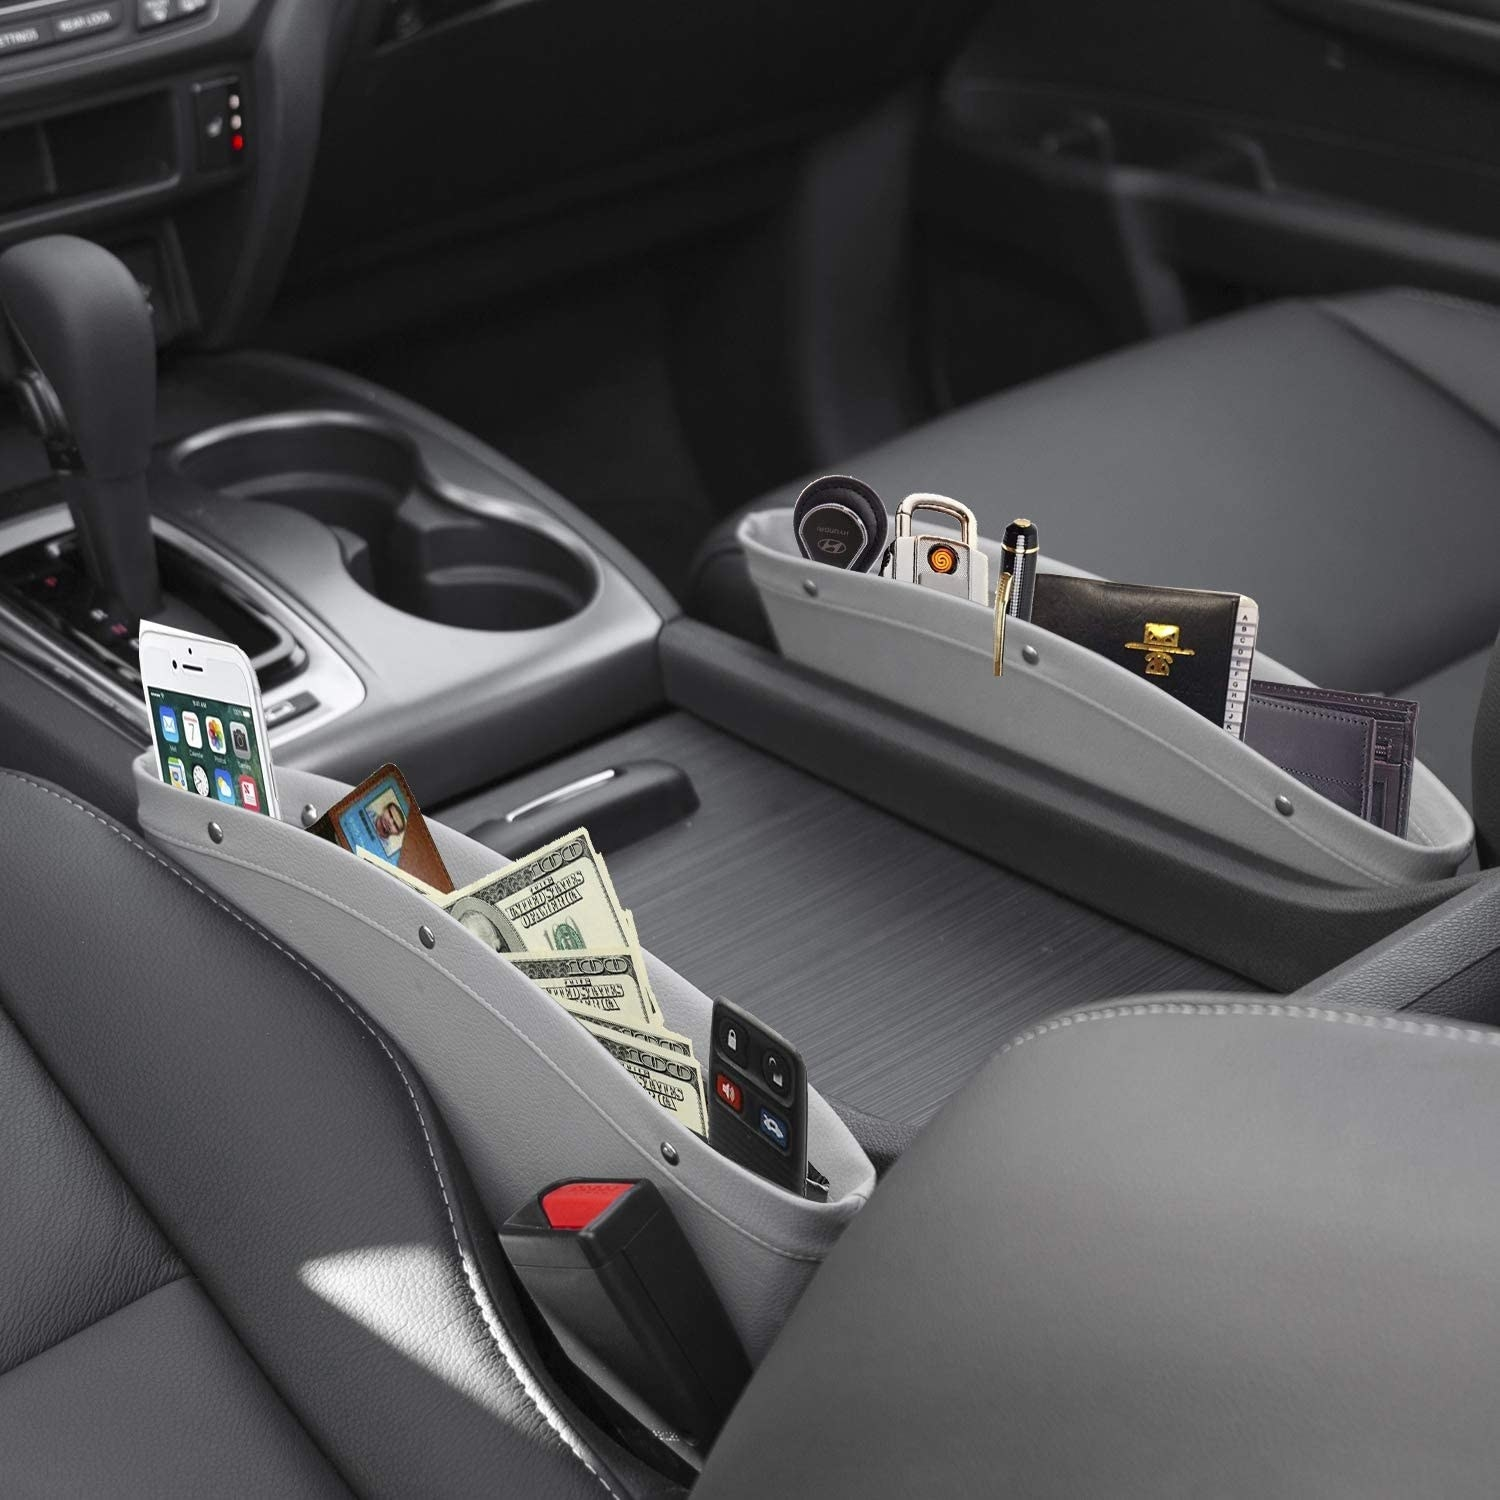 The car seat gap organizer holding a phone, cash, sunglasses, and more